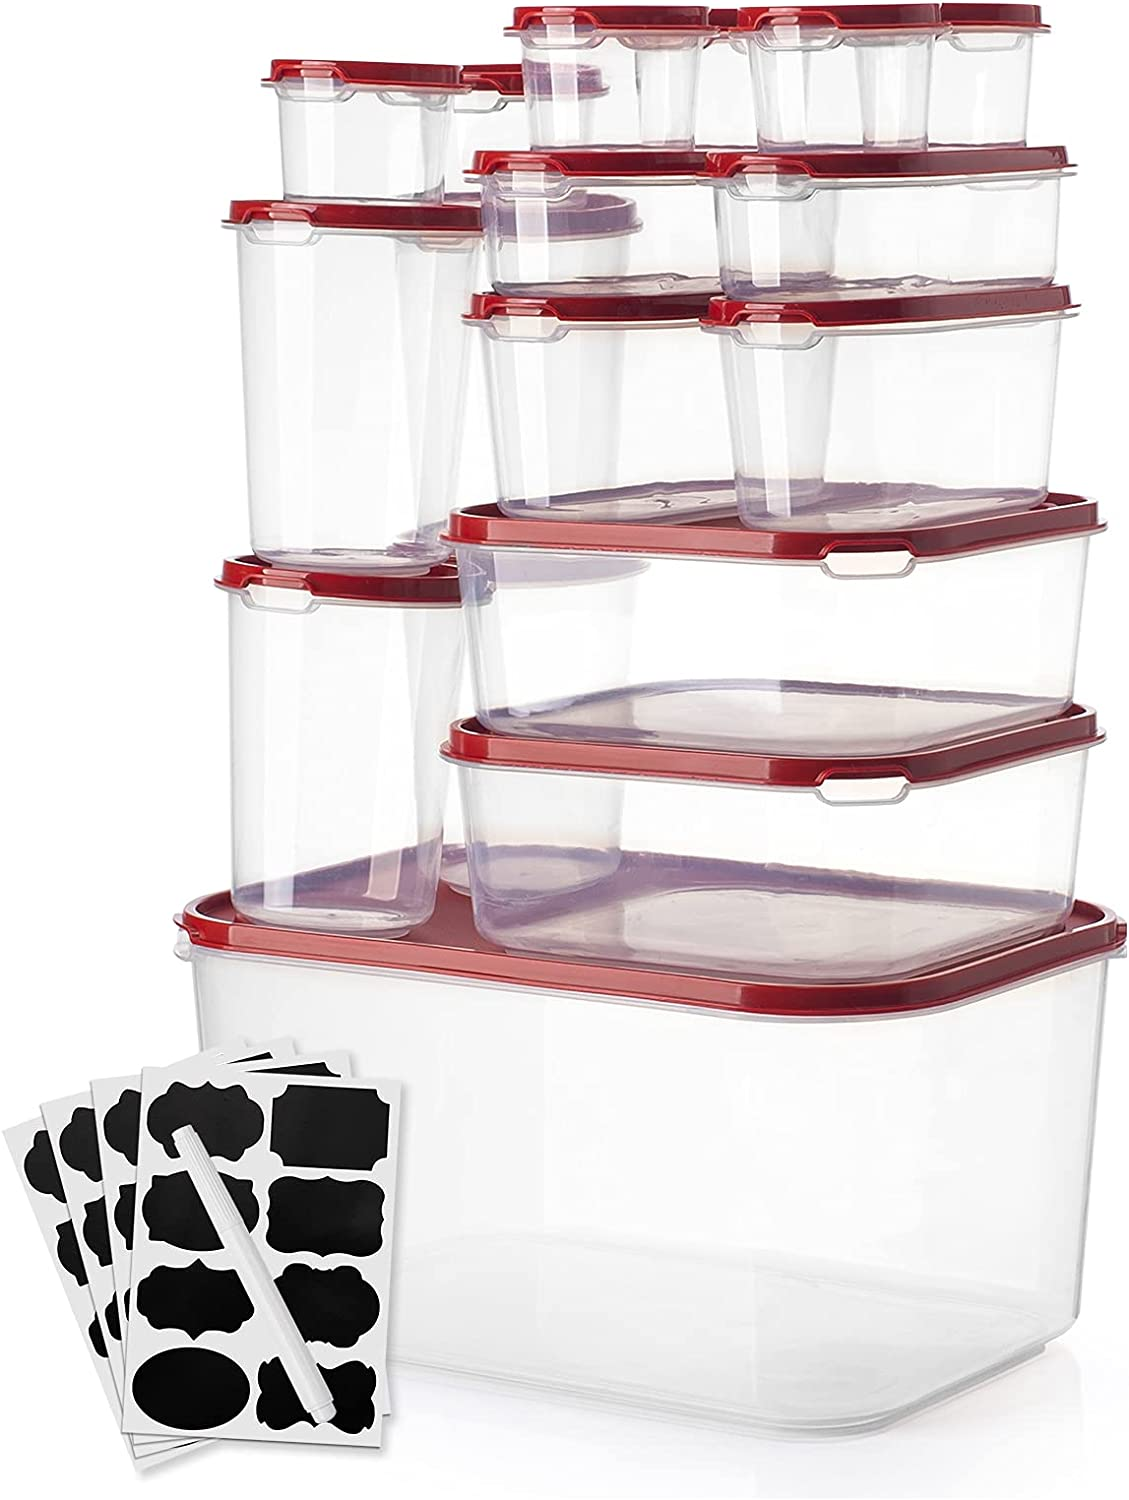 [Large] Food Storage Containers with Lids, 17 Packs Plastic Containers for Food Storage - Airtight & BPA-Free & Microwave, Dishwasher Safe Storage Container for Rice, Flour & Leftovers